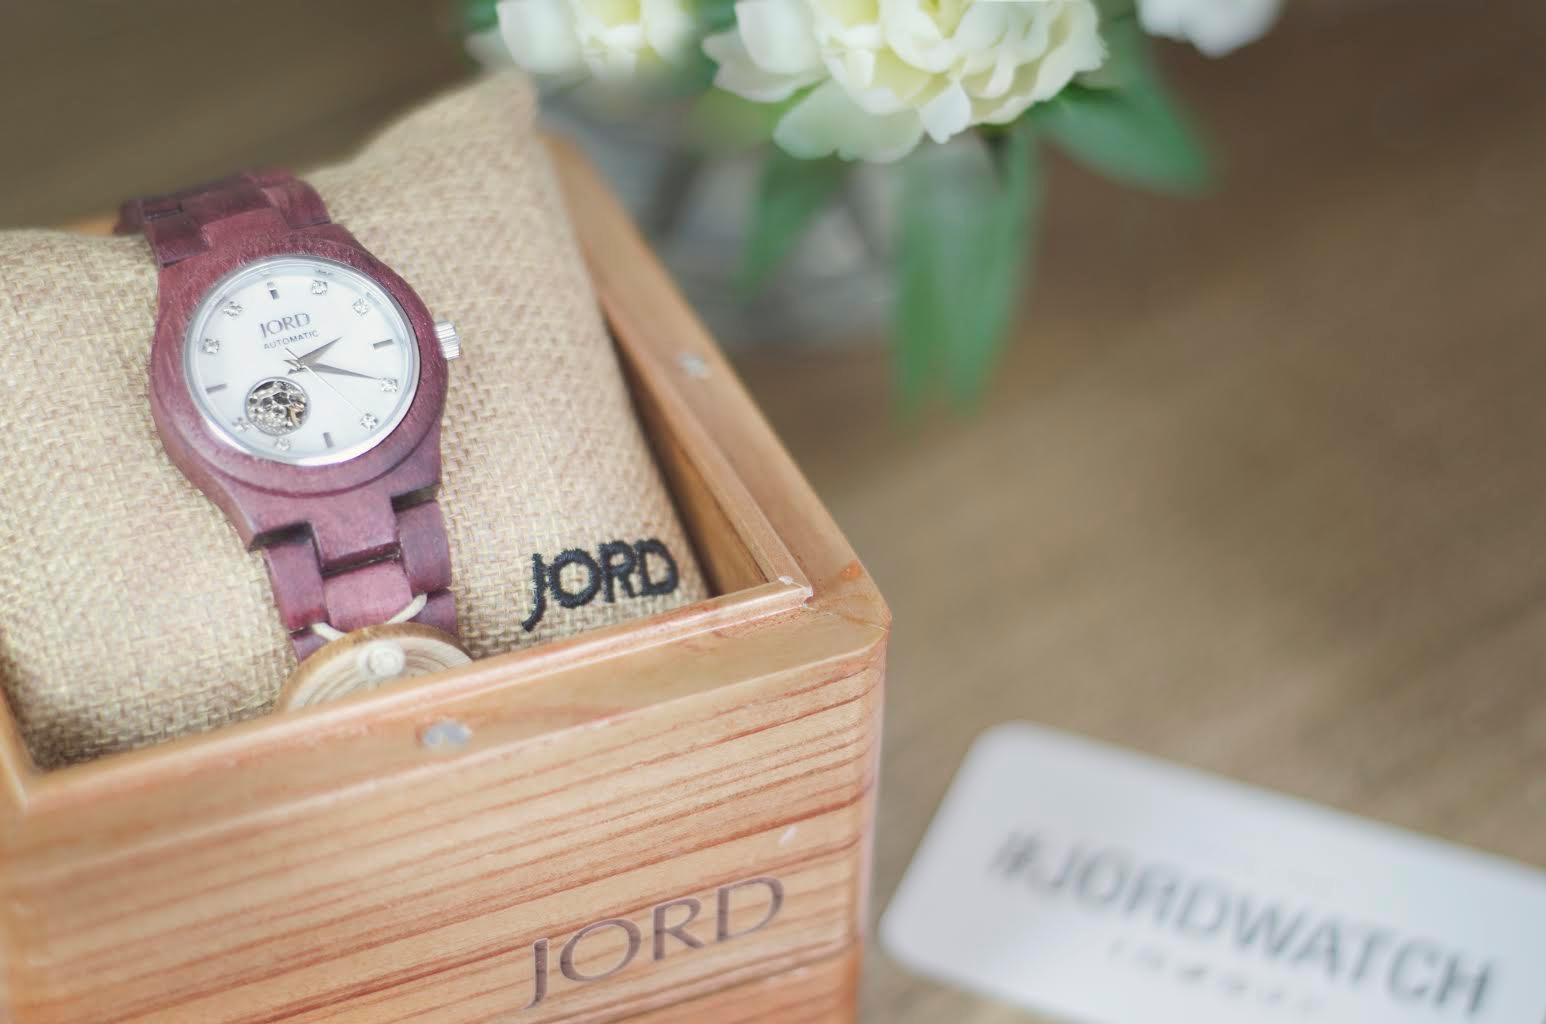 micah-maria-photography-these-are-your-days-jord-wood-watches-cora-purpleheart-making-memories